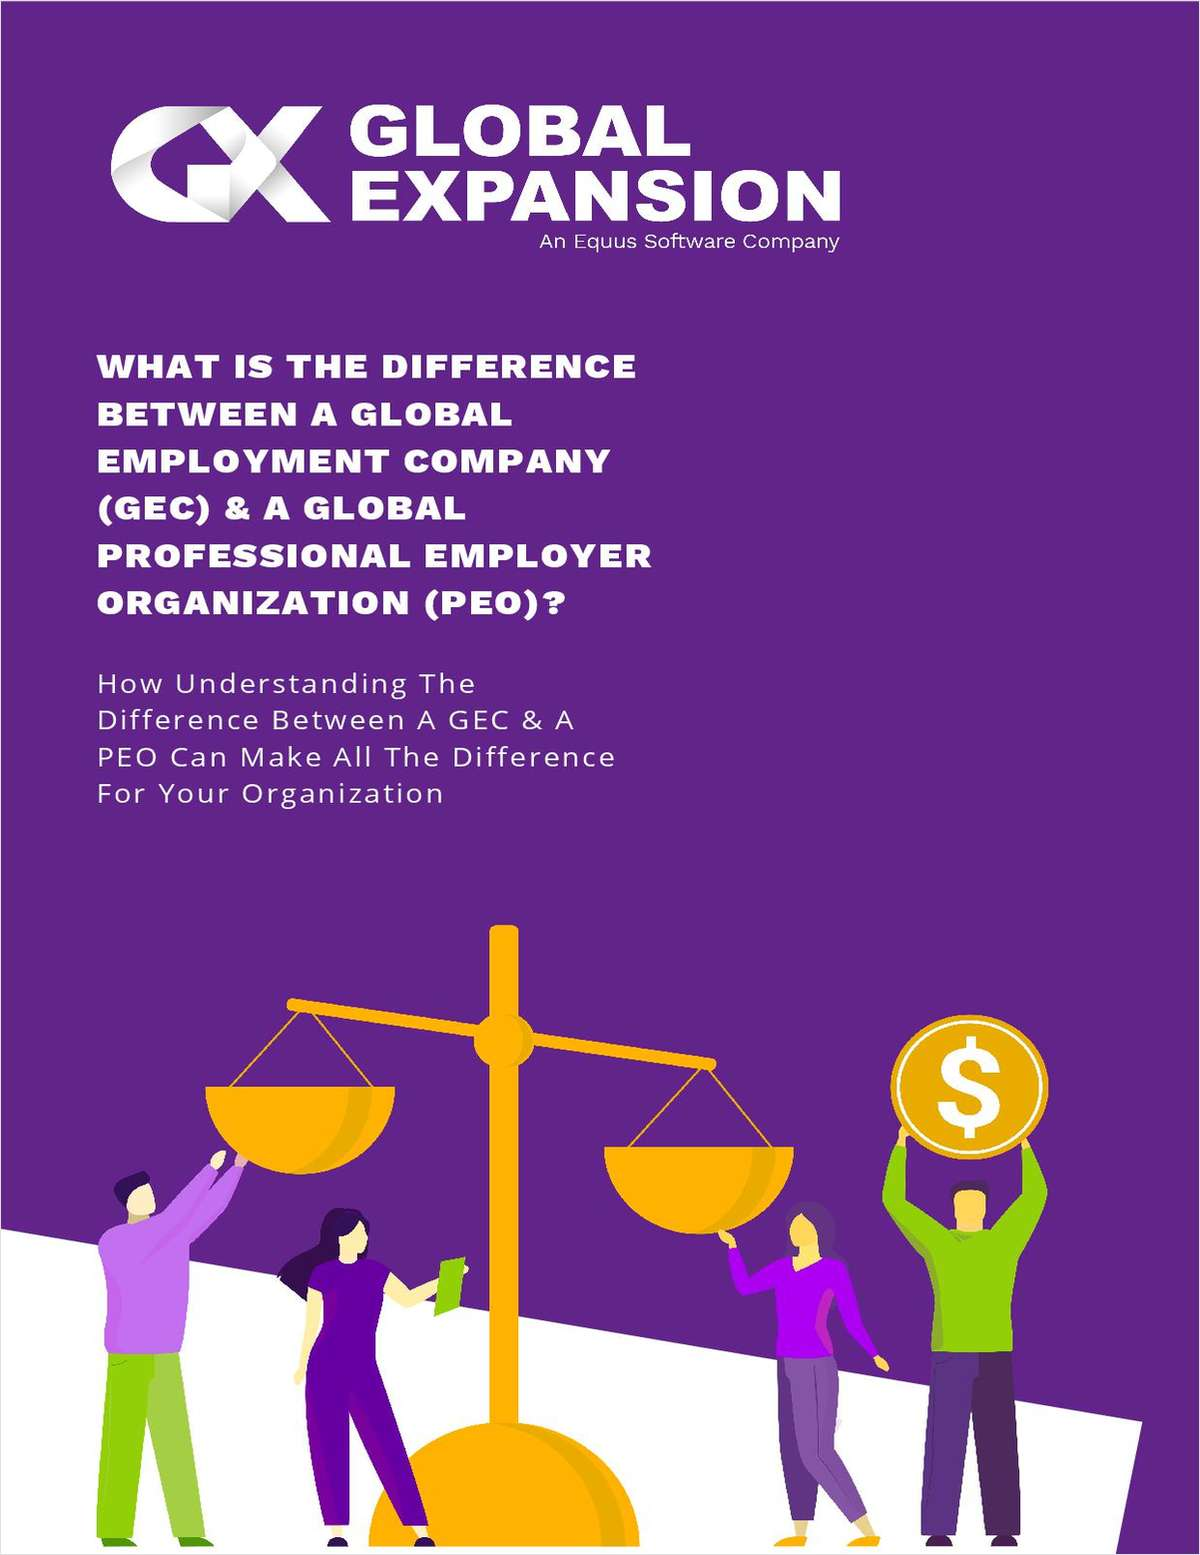 What Is The Difference Between A Global Employment Company (GEC) & A Global Professional Employer Organization (PEO)